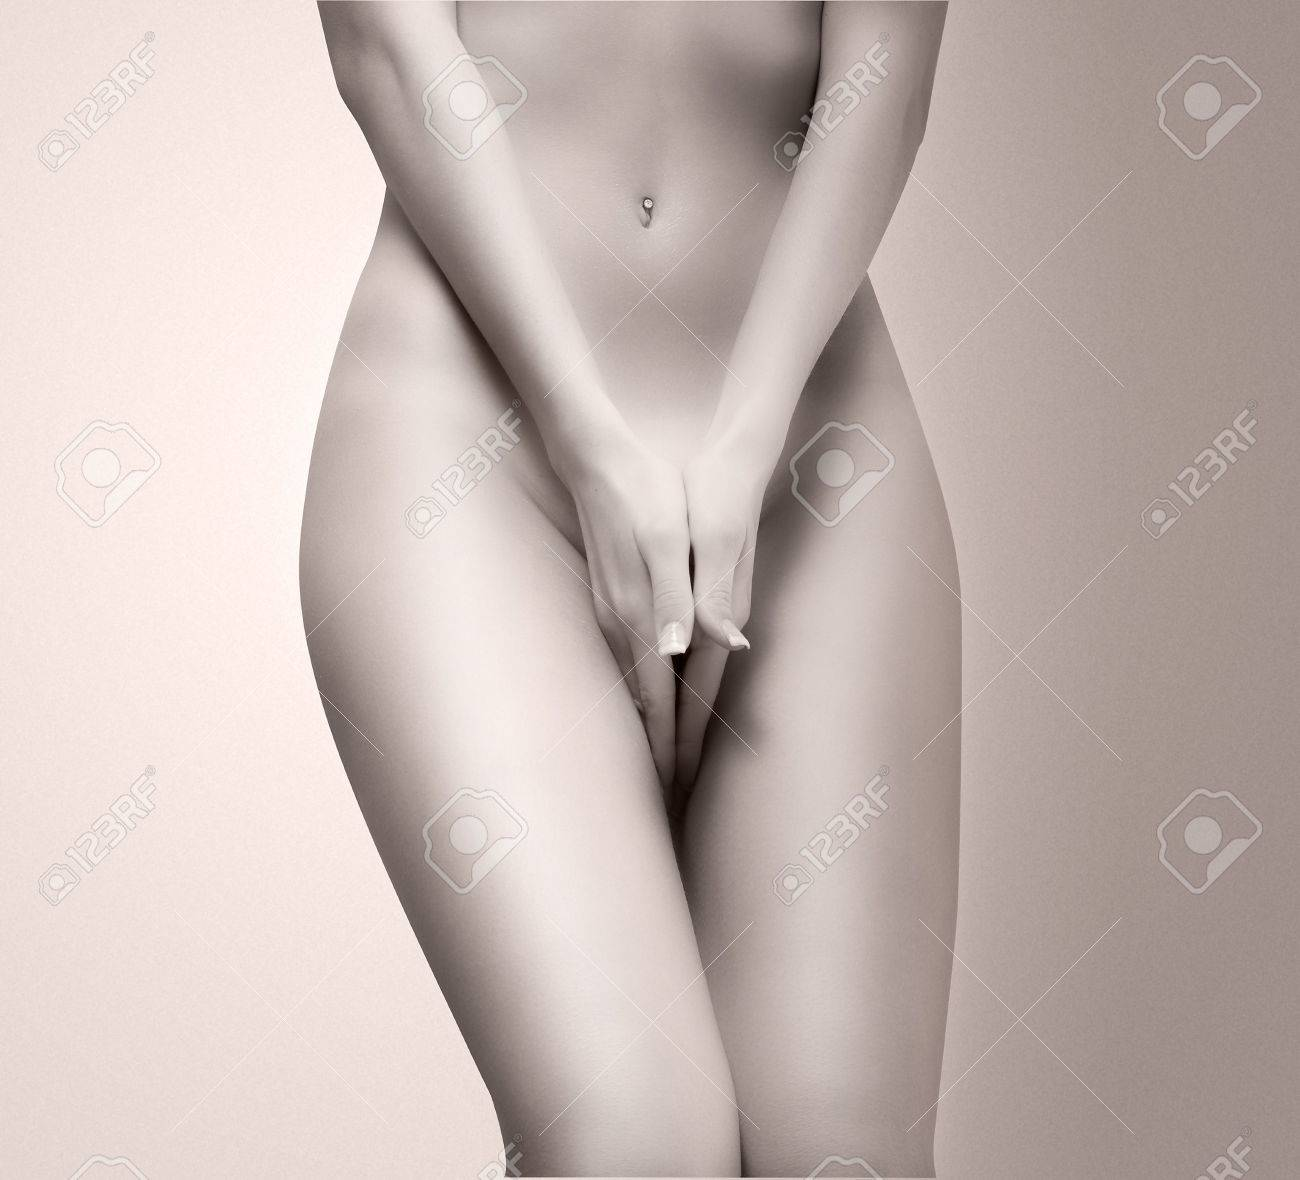 part of a nude woman body with close hands between the legs in a vintage photo Stock Photo - 3083840